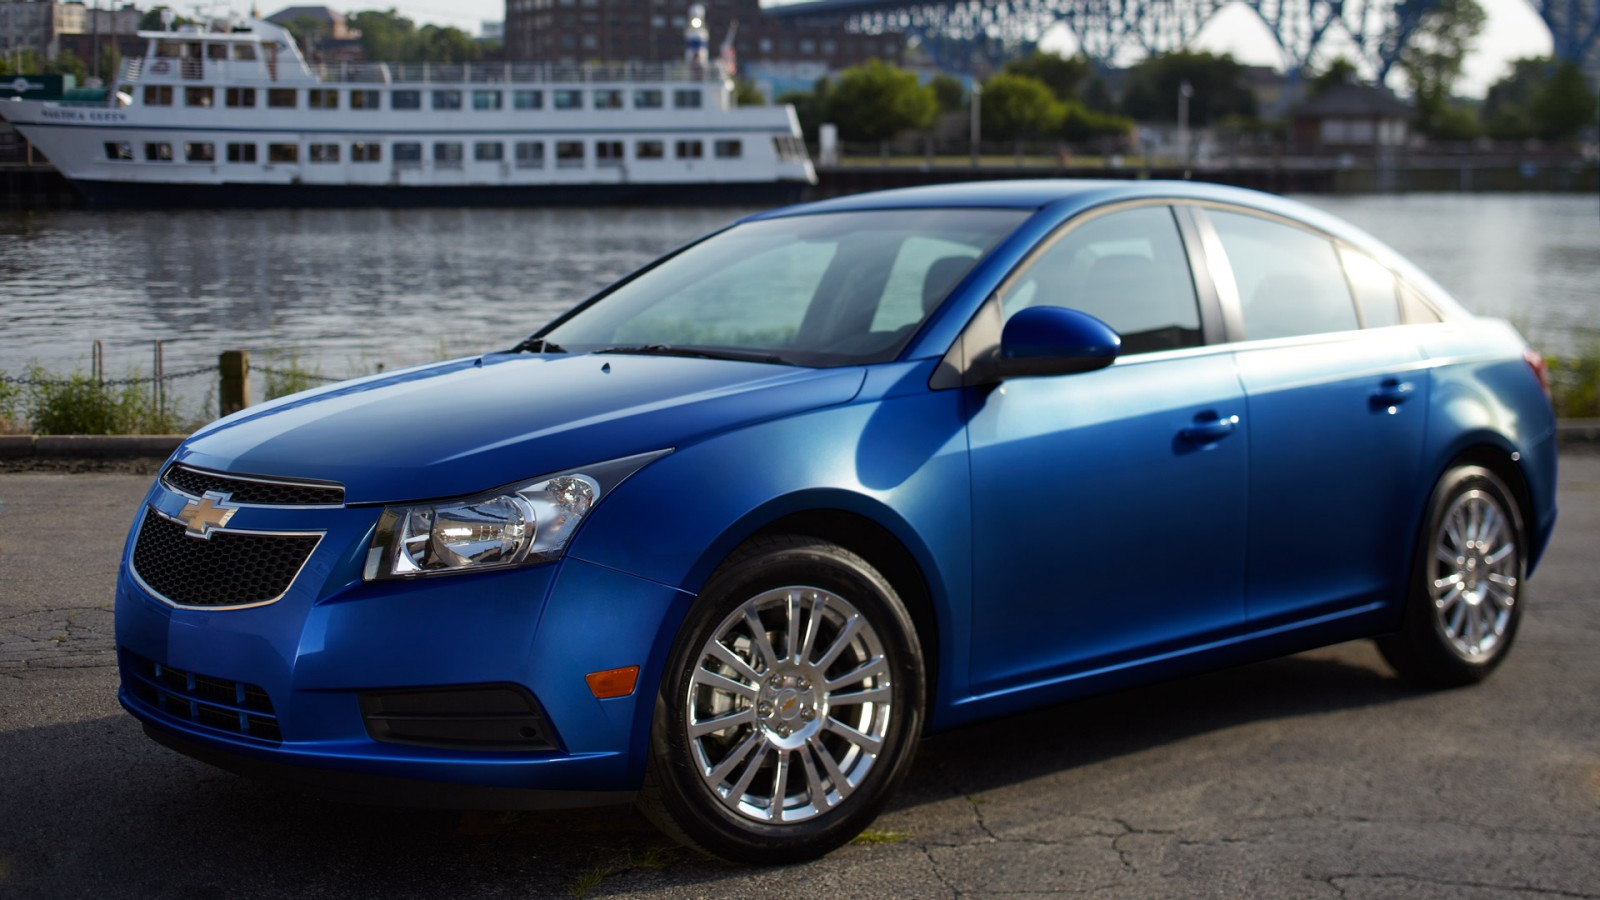 Cruze chevy cruze 2013 oil change : 6 Reasons Why You Should by a 2013 Chevy Cruze - McCluskey Chevrolet